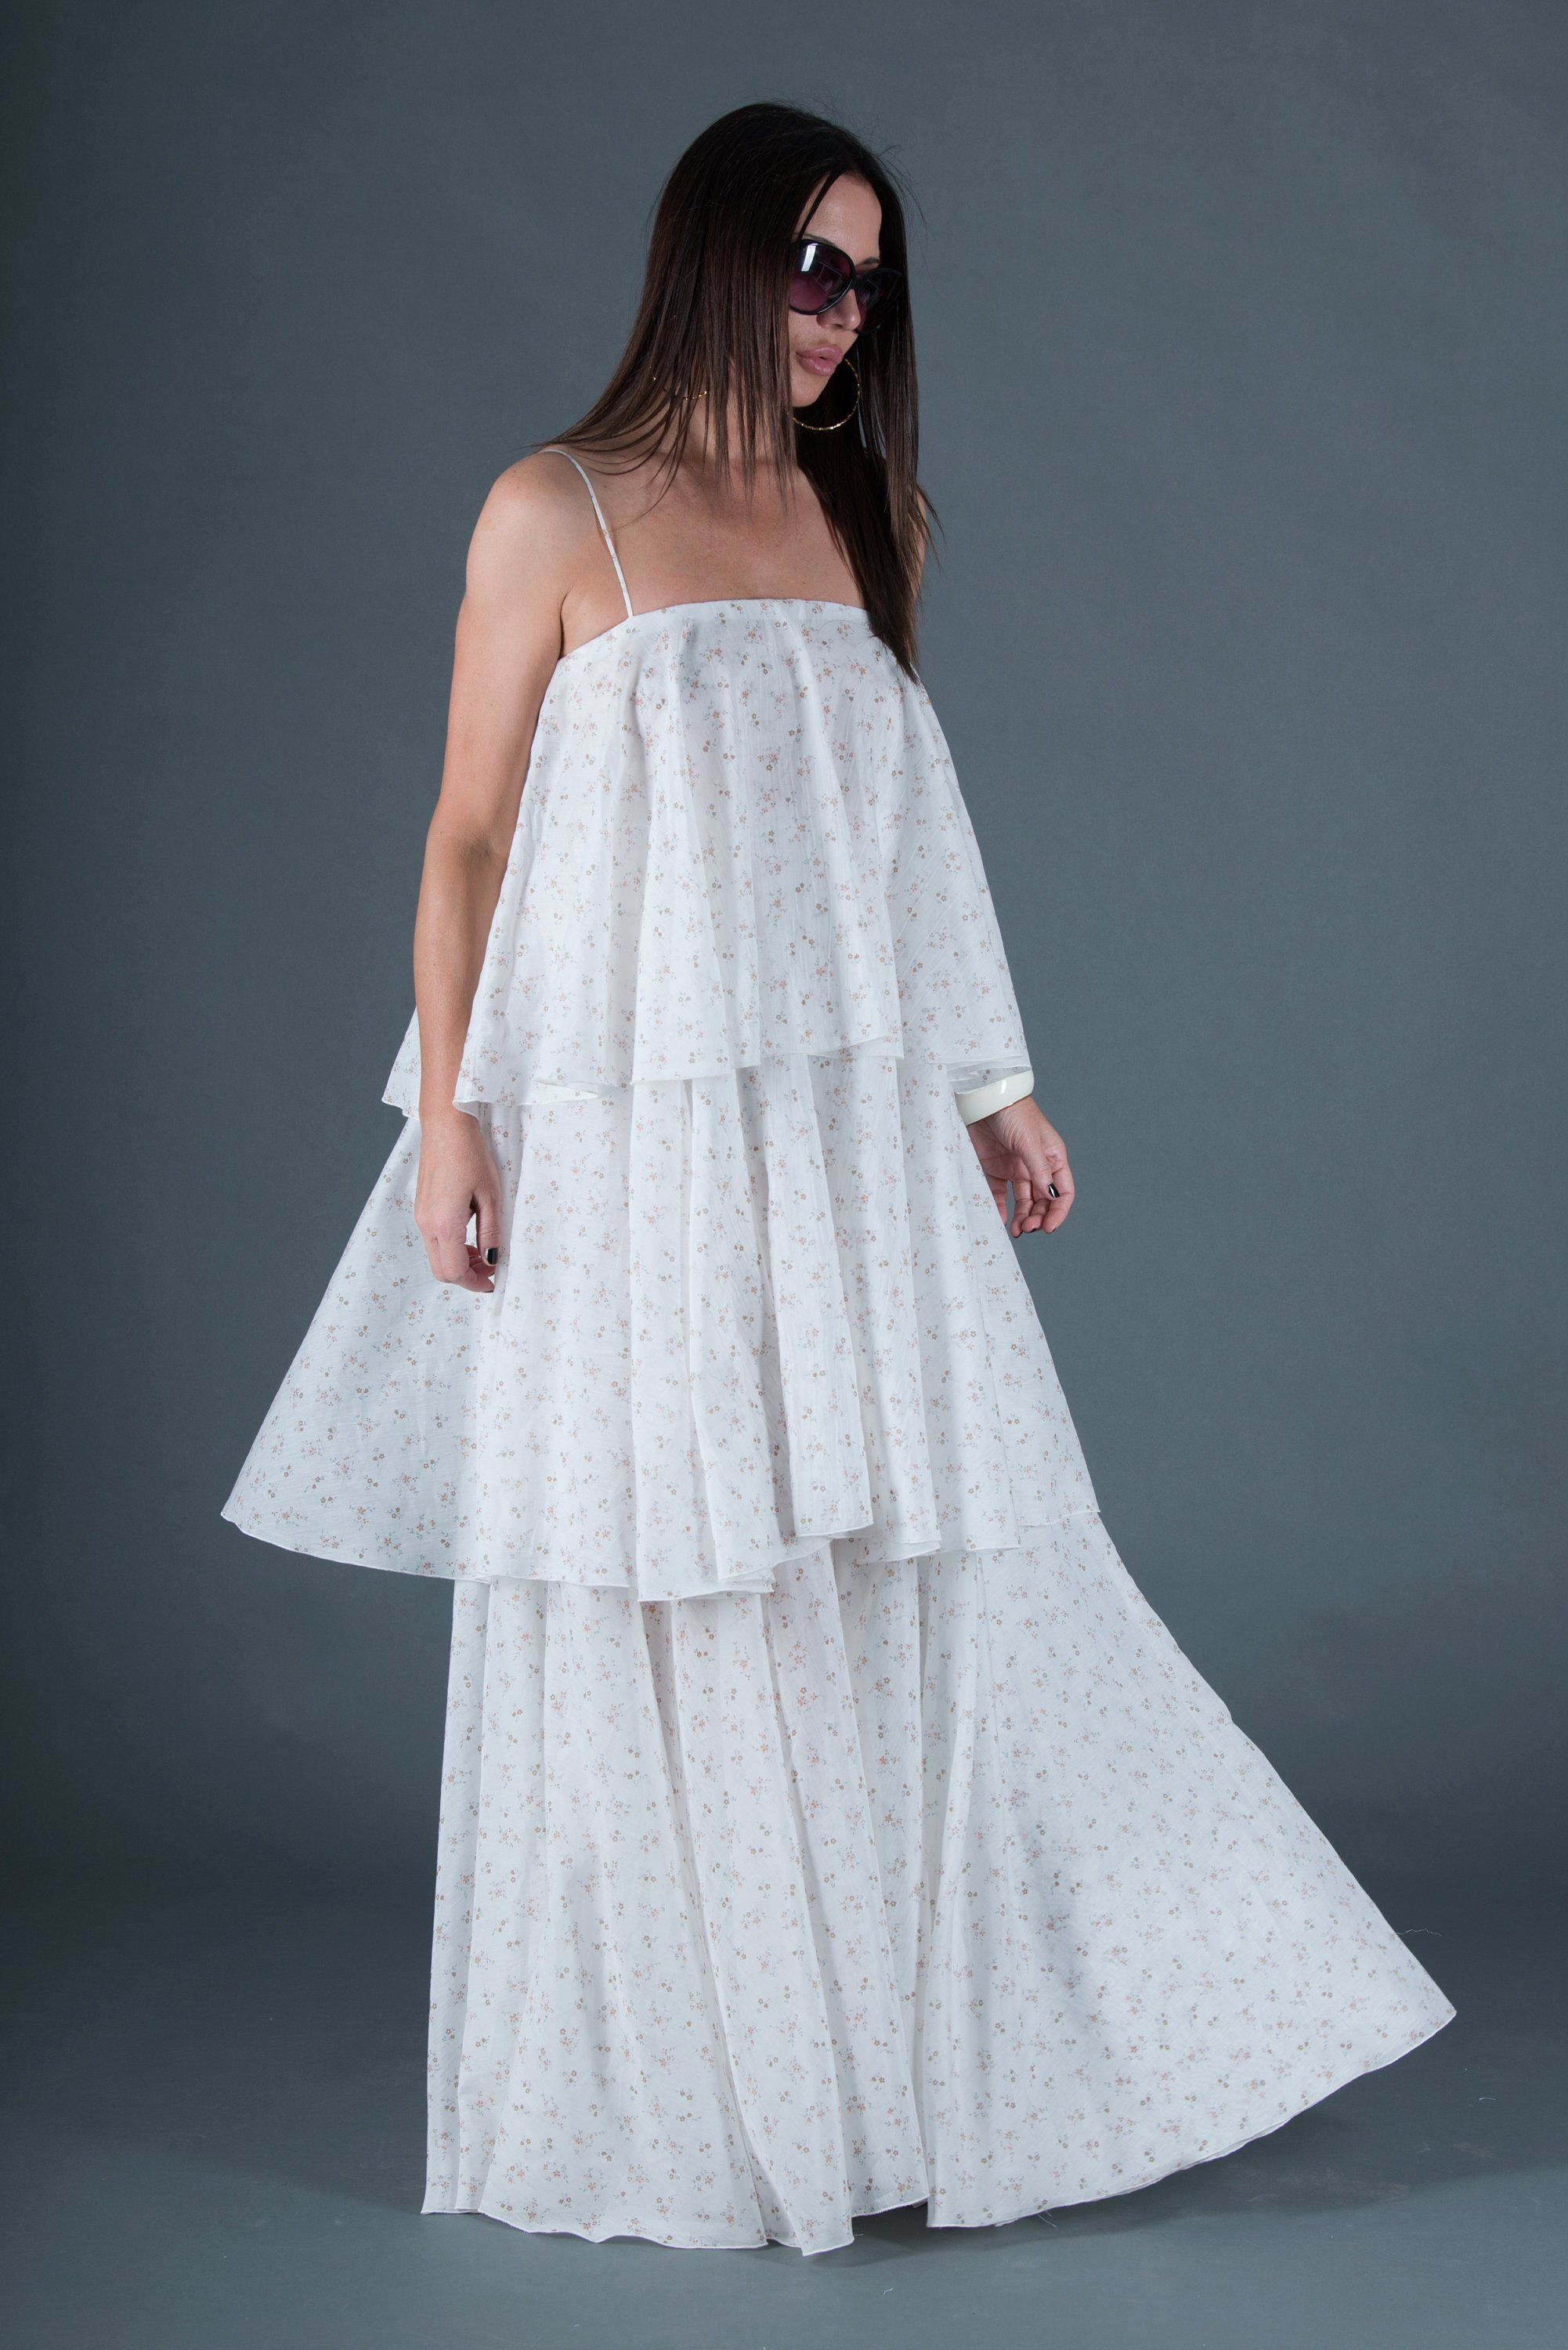 White women flounces dress women long party dress maxi cotton